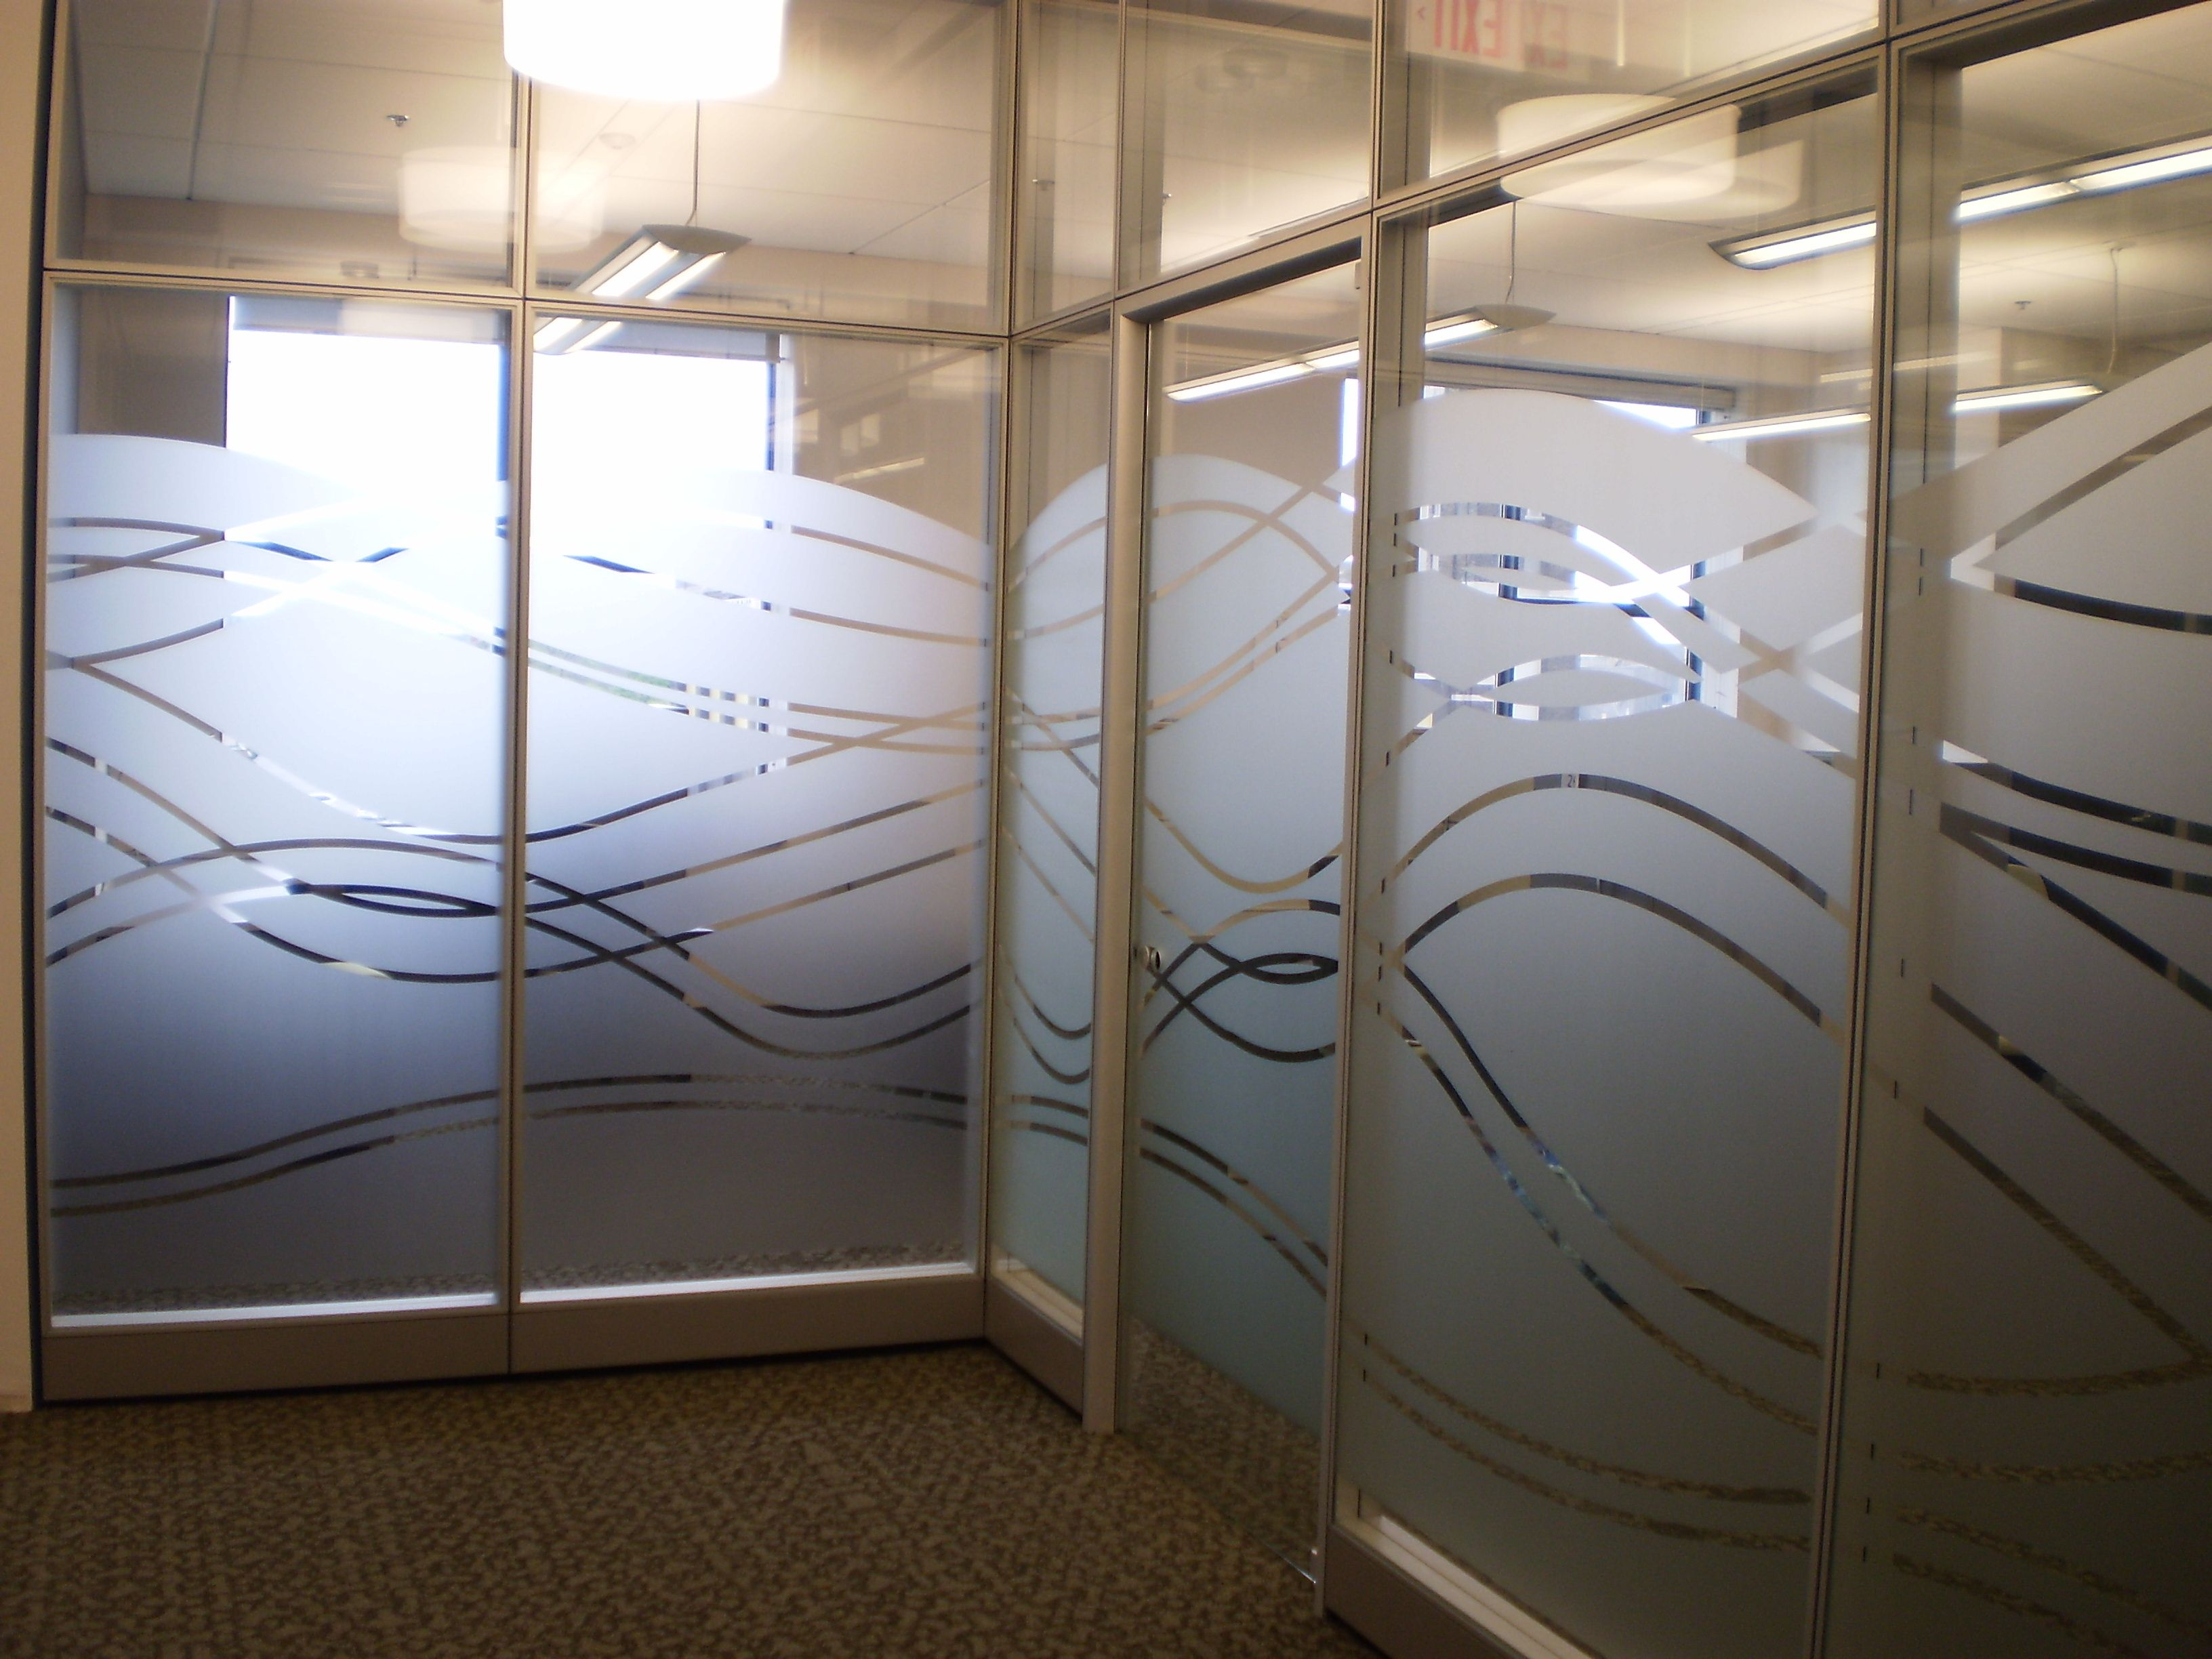 Hows That For Some Creative Privacy Through Windowfilm Glass Wall Office Decorative Window Film Glass Film Design